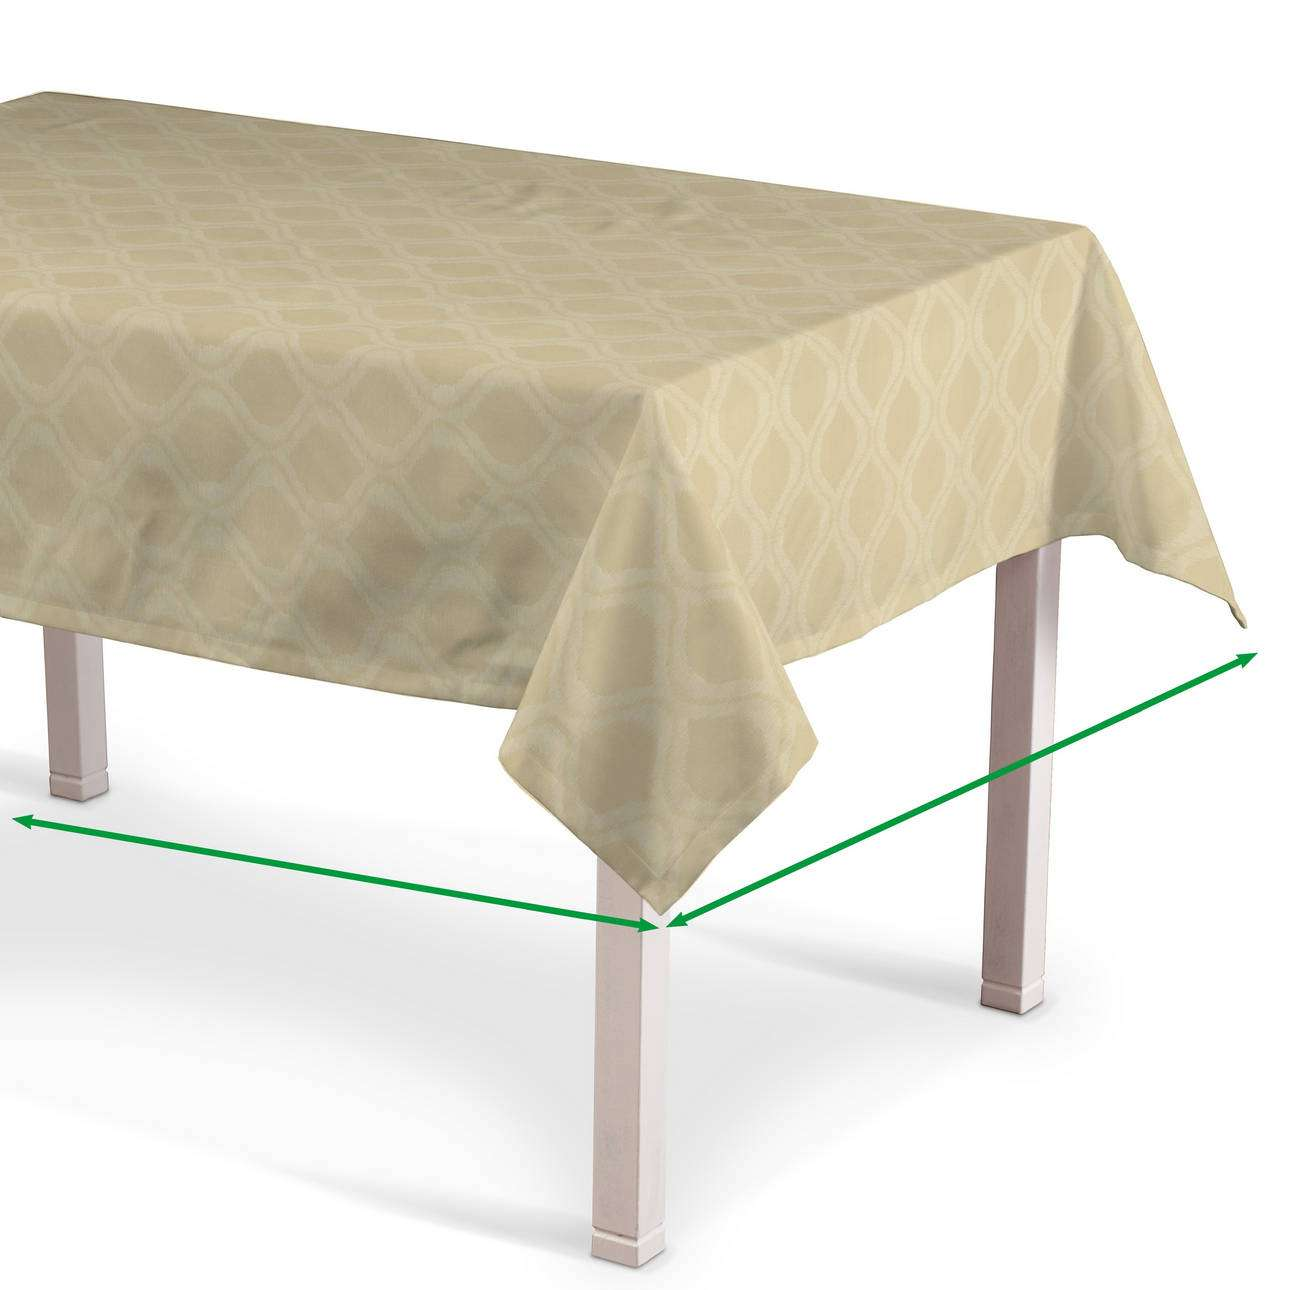 Rectangular tablecloth in collection Damasco, fabric: 142-53